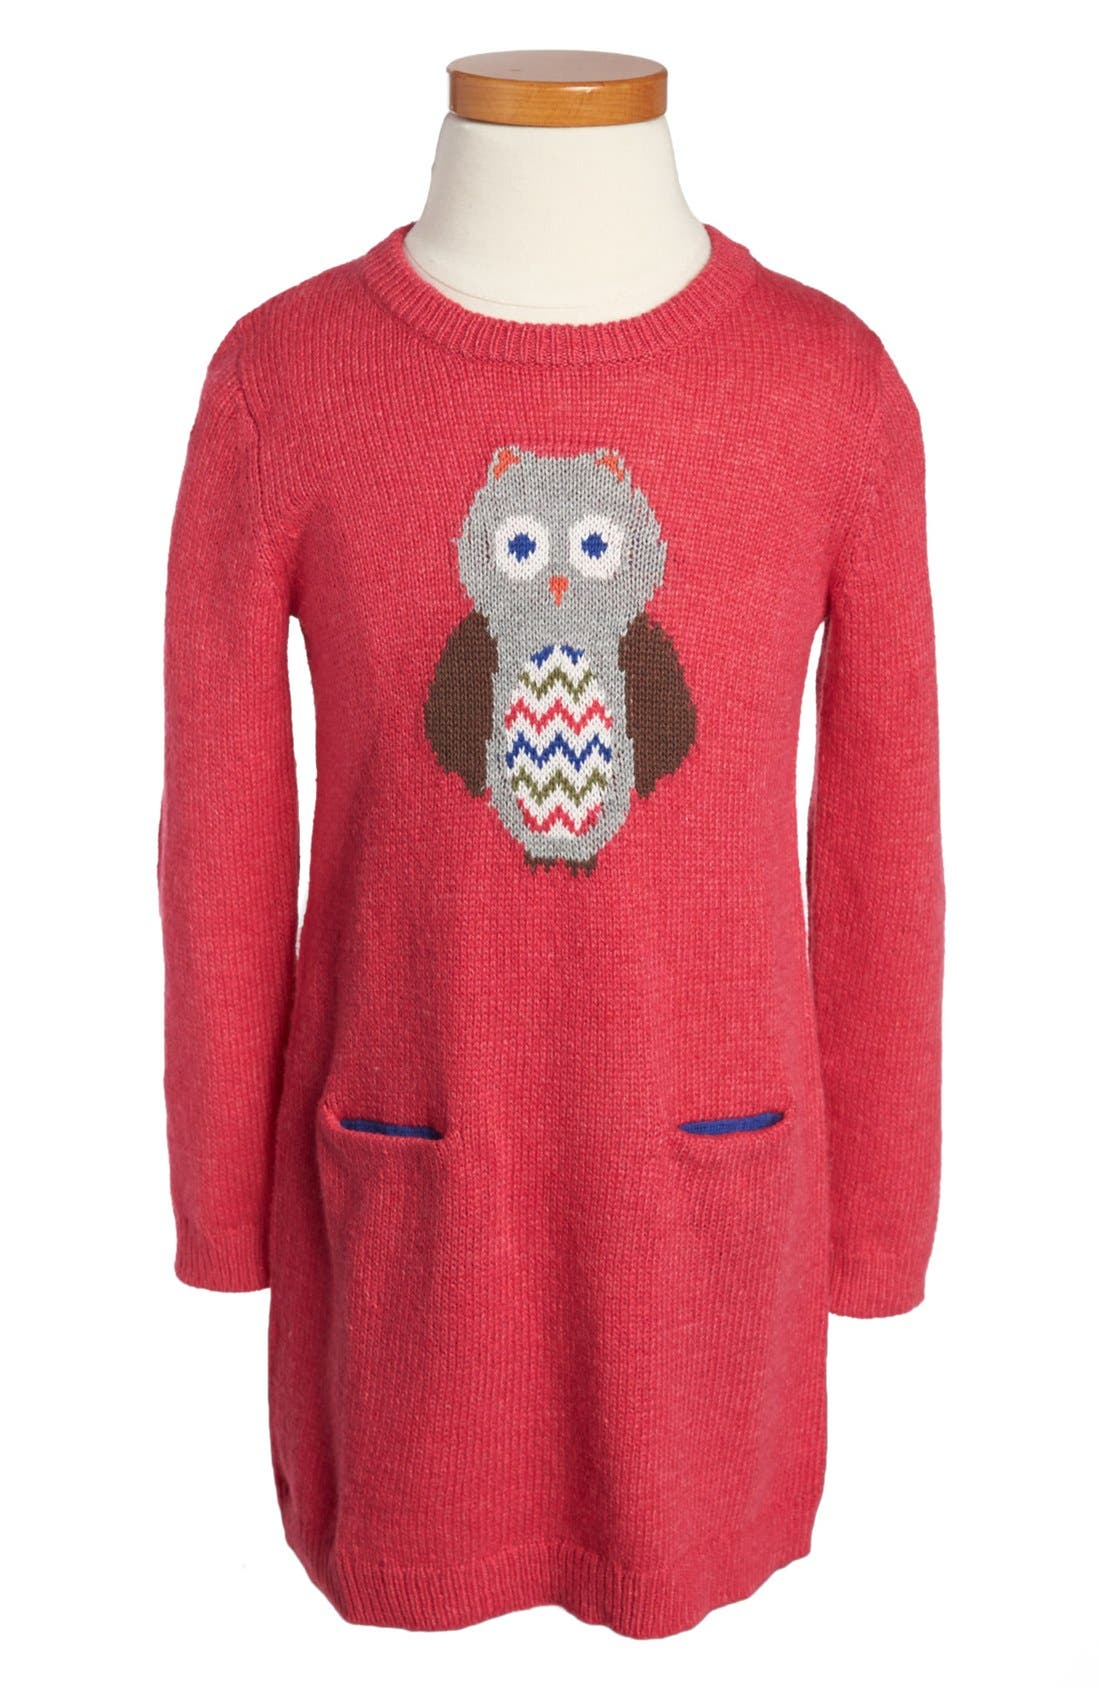 Alternate Image 1 Selected - Tucker + Tate 'Chantel' Intarsia Knit Dress (Toddler Girls)